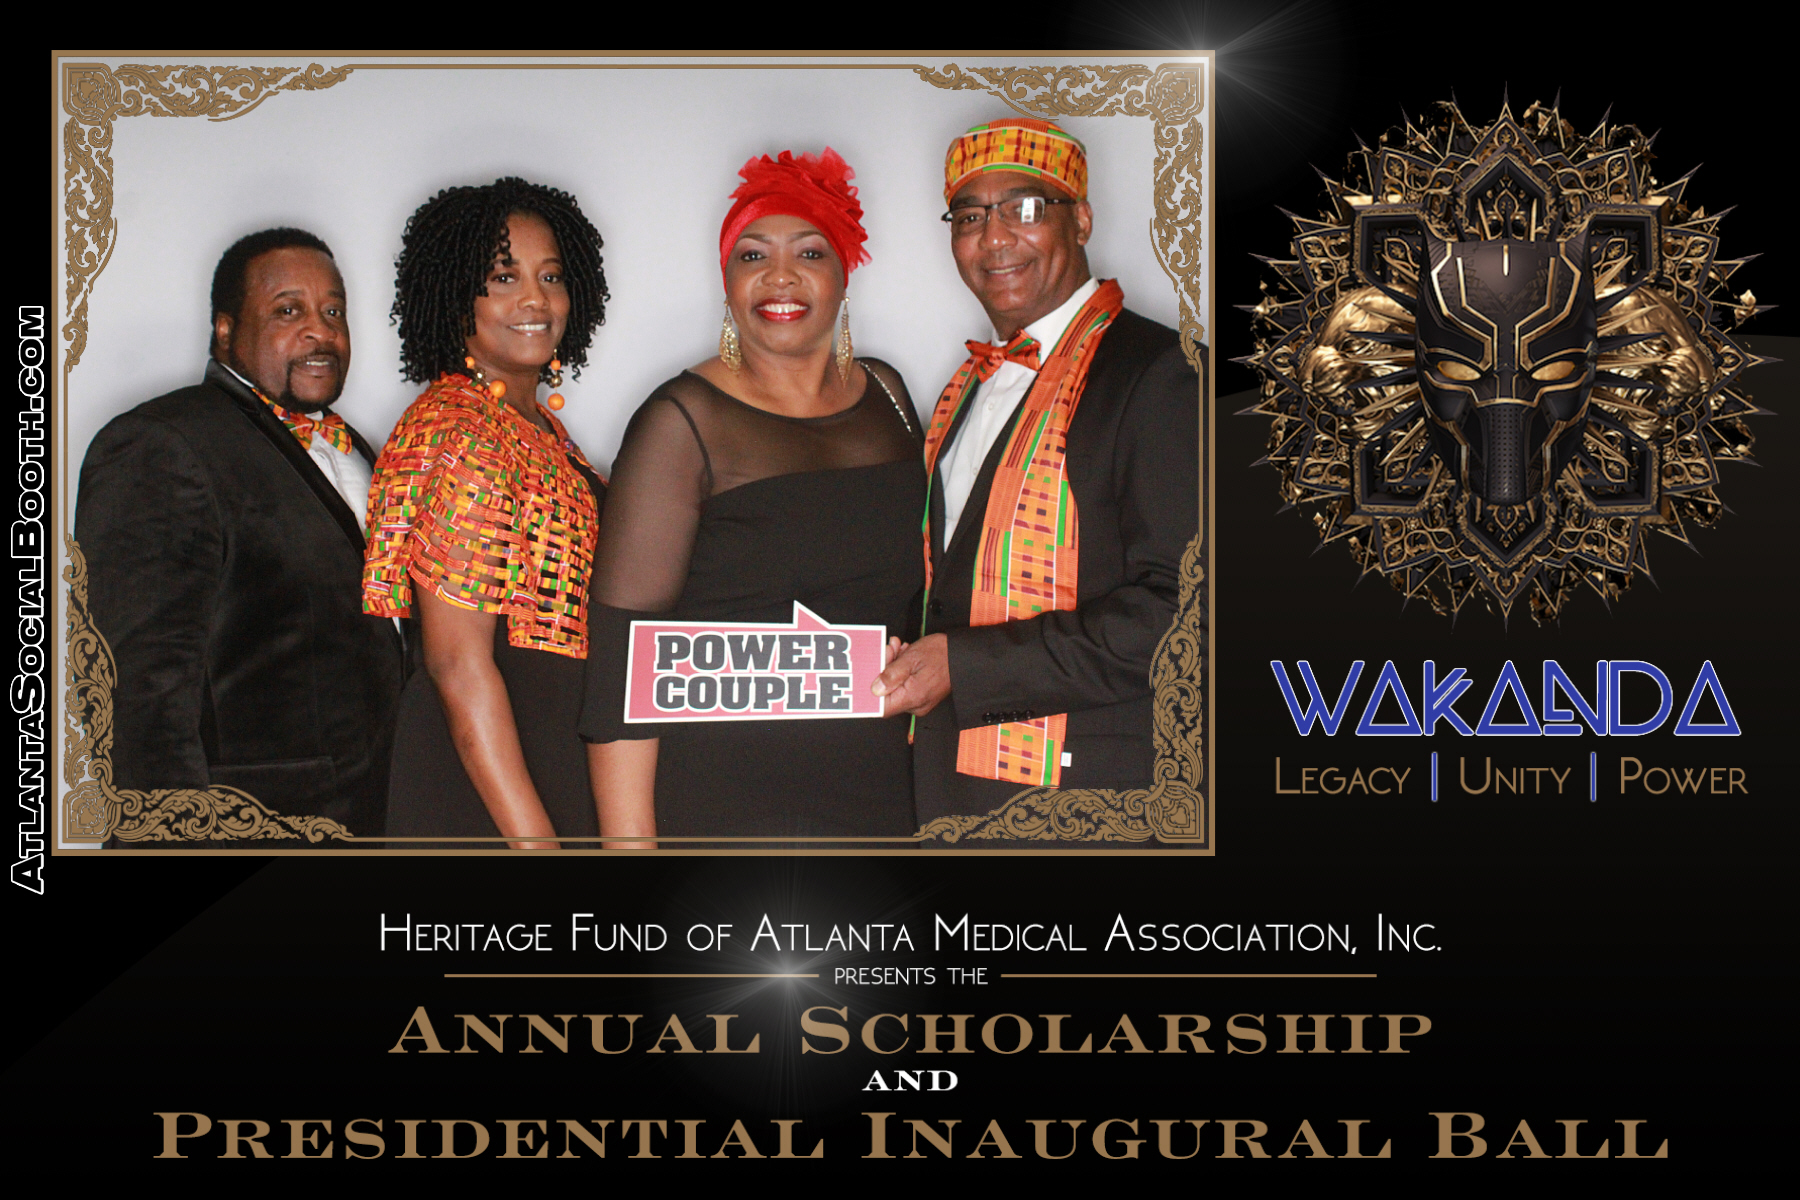 Wakanda Heritage Fund of Atlanta